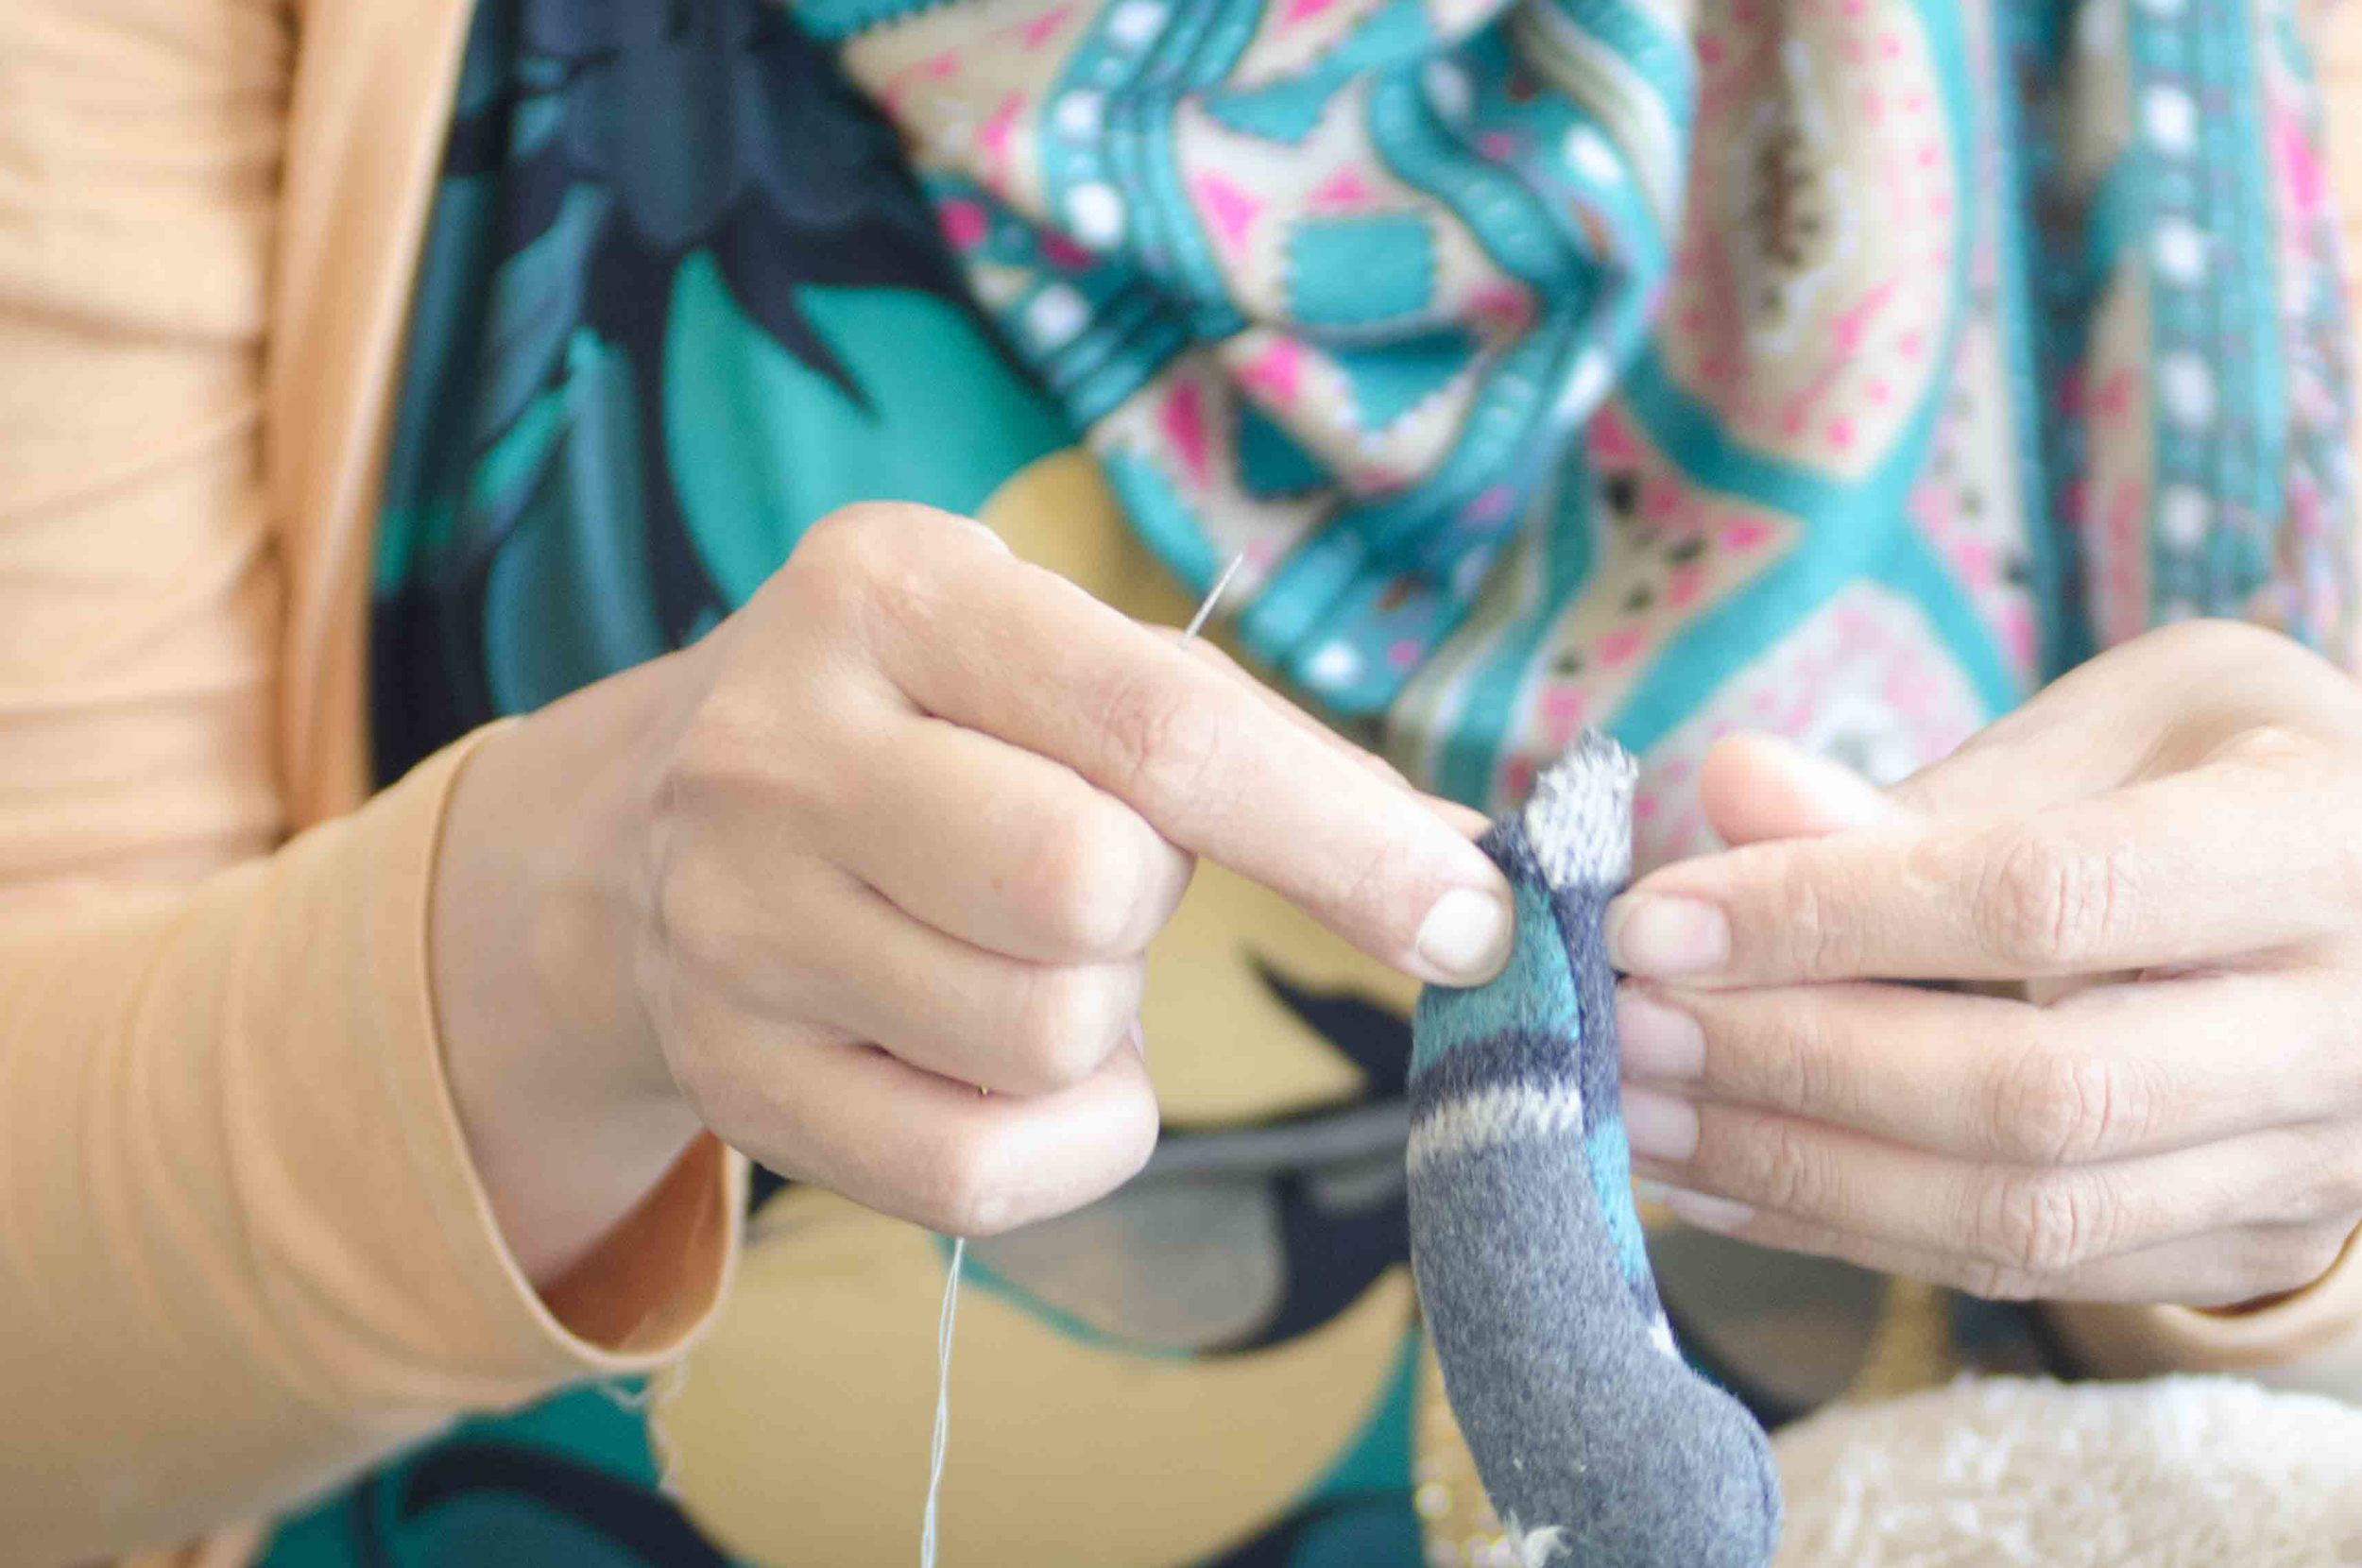 Child-Cup-Full-Nonprofit-Sewing-Facility-Copyright-Threadies-2015-DSC_3175.jpg